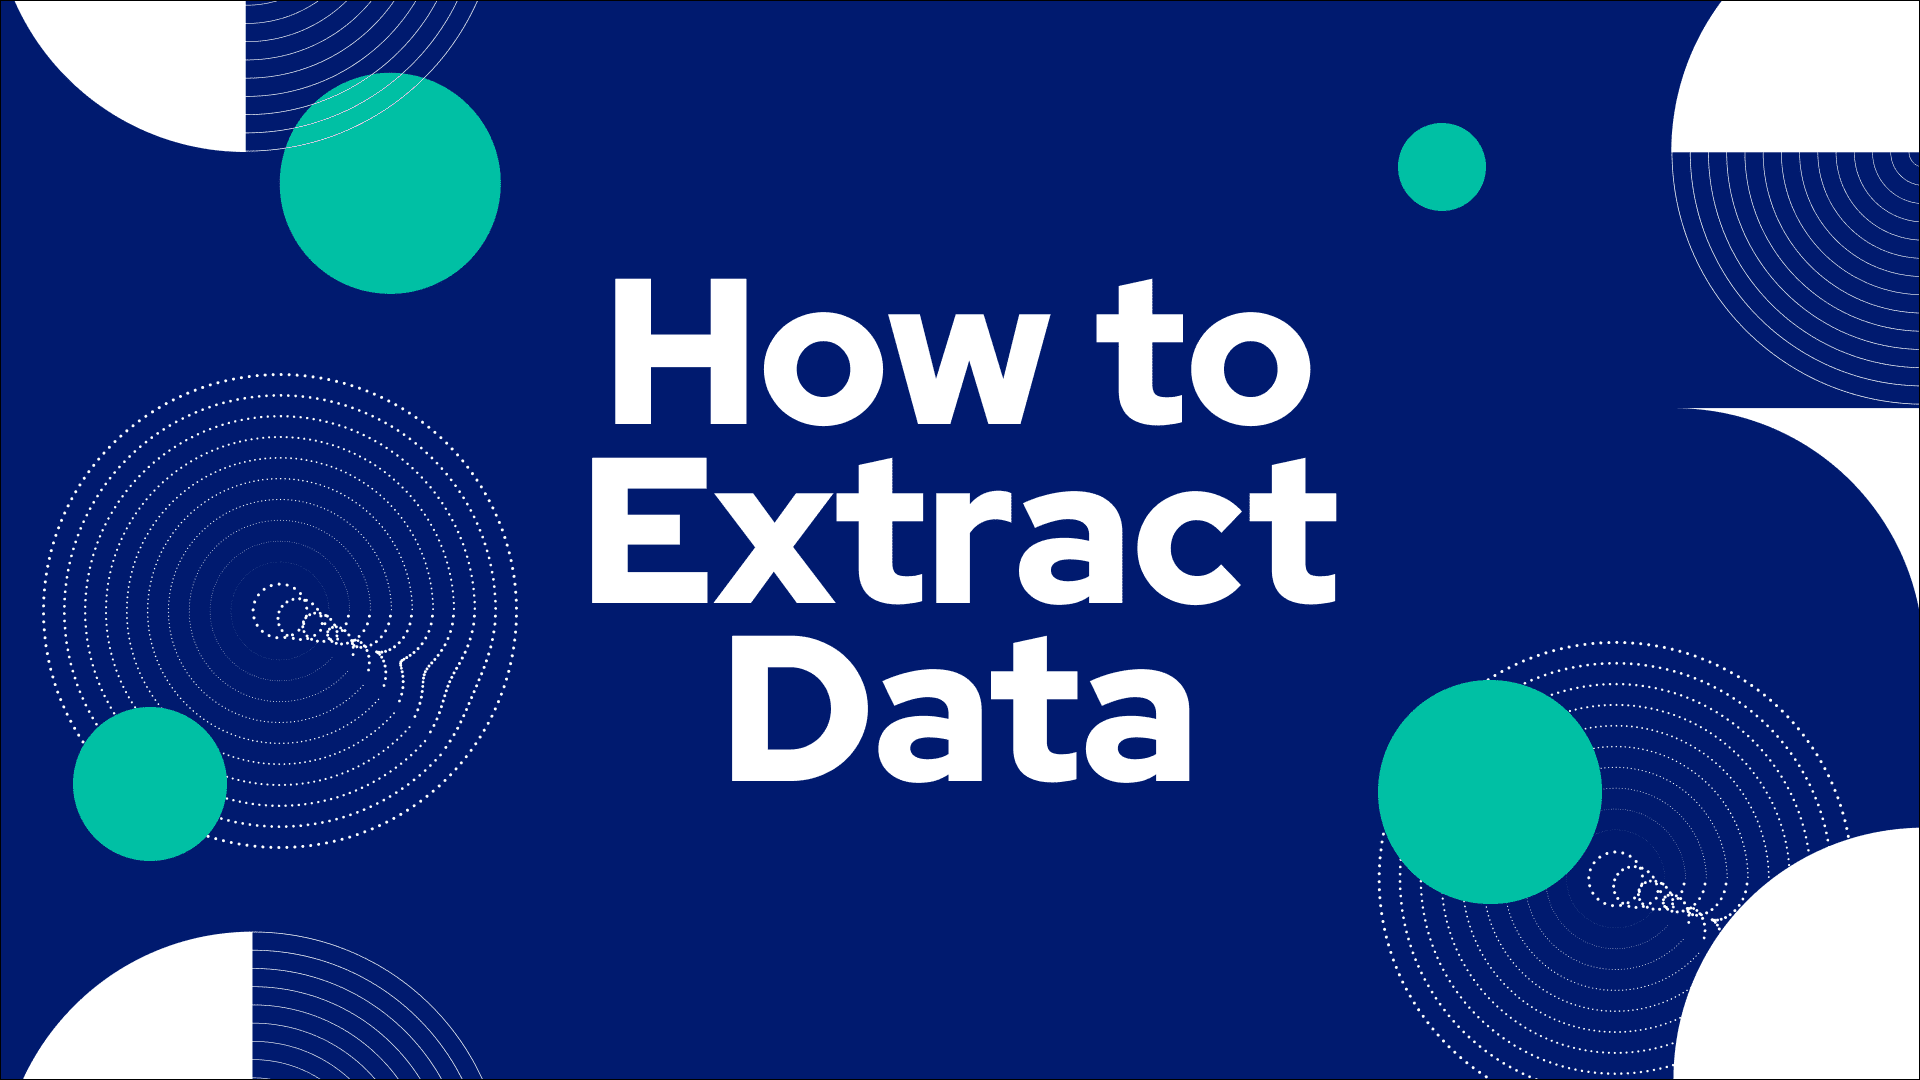 Extract Data Video